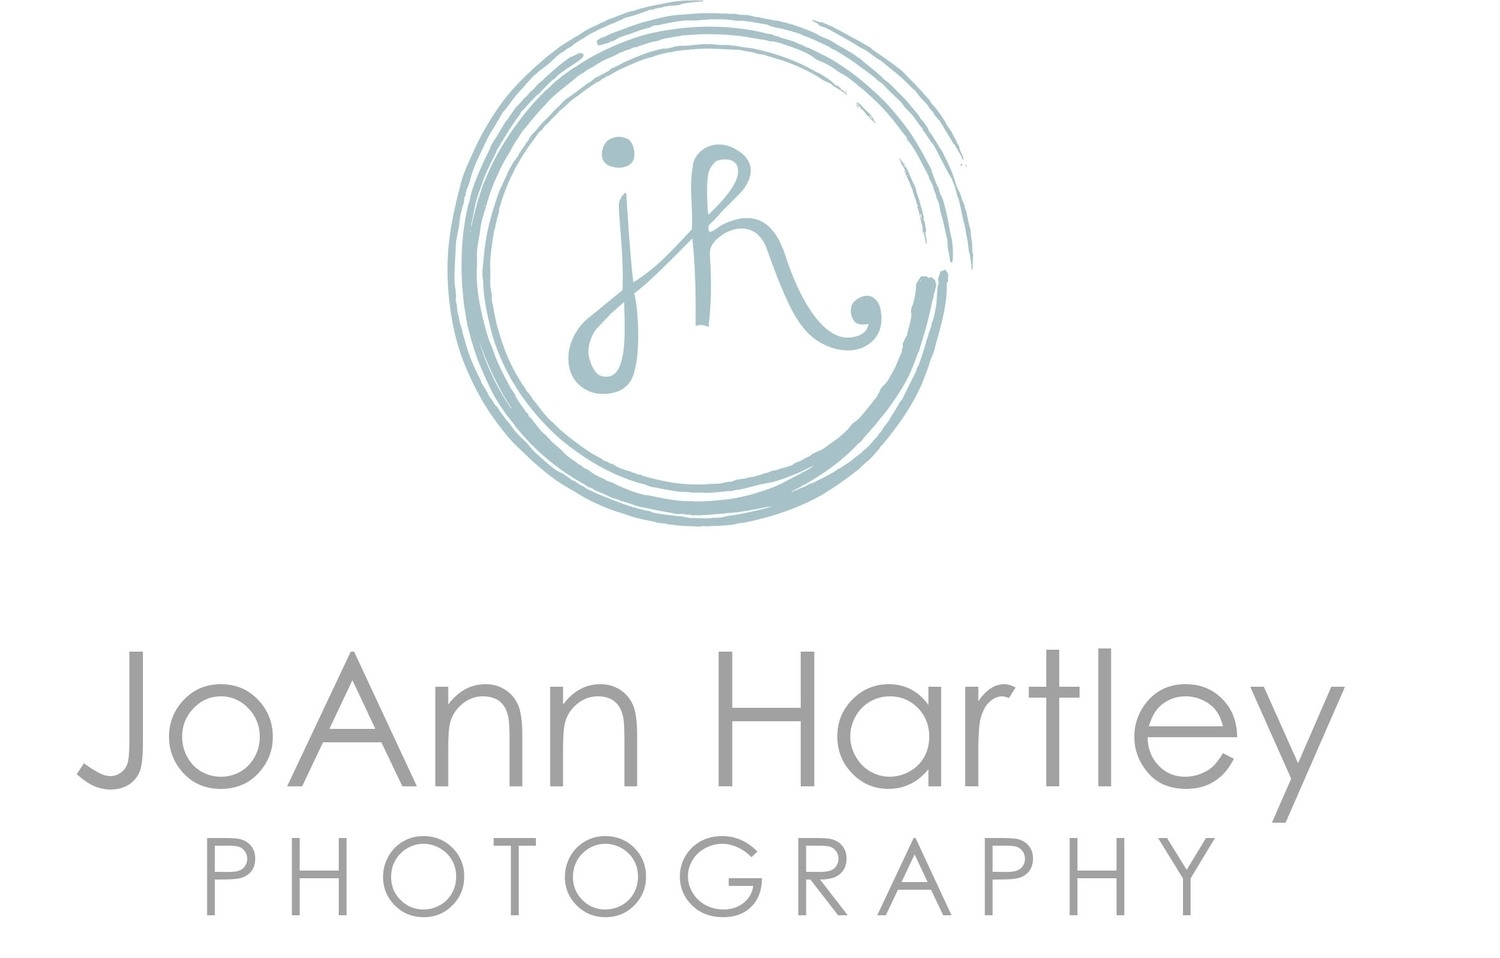 JOANN HARTLEY PHOTOGRAPHY